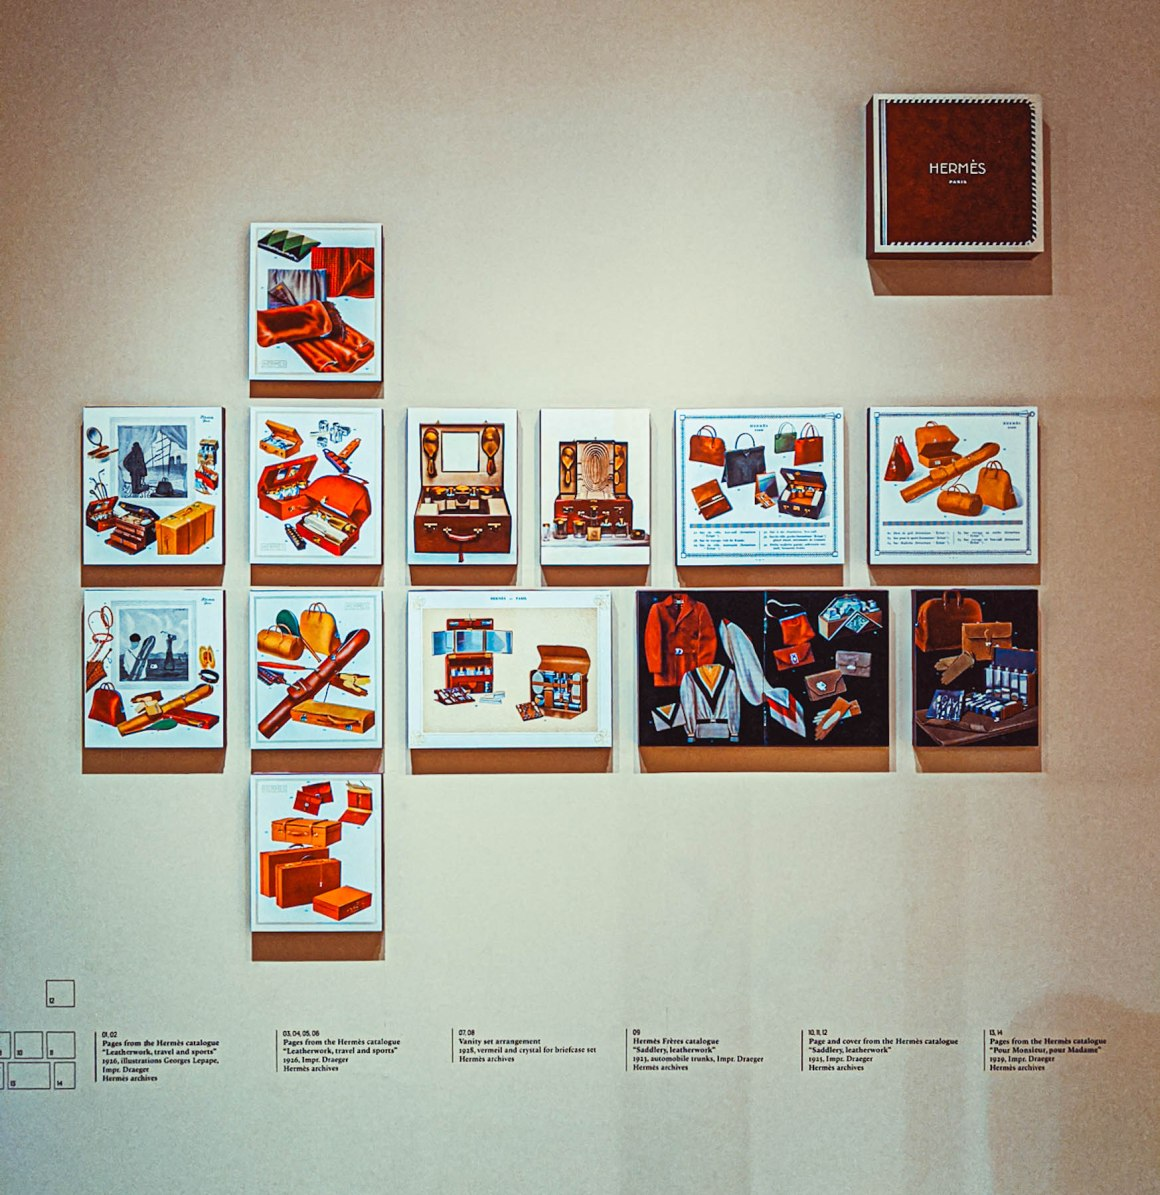 Hermès Heritage, Rouges Hermès, Naina Redhu, Naina.co, EyesForLuxury, The Chanakyapuri, Hermès India, Hermès Exhibit, Hermès Vintage, Hermès Objects, Red Objects, History, France, French Luxury Brand, New Delhi, Luxury Brand, Photographer, Blogger, Experience Collector